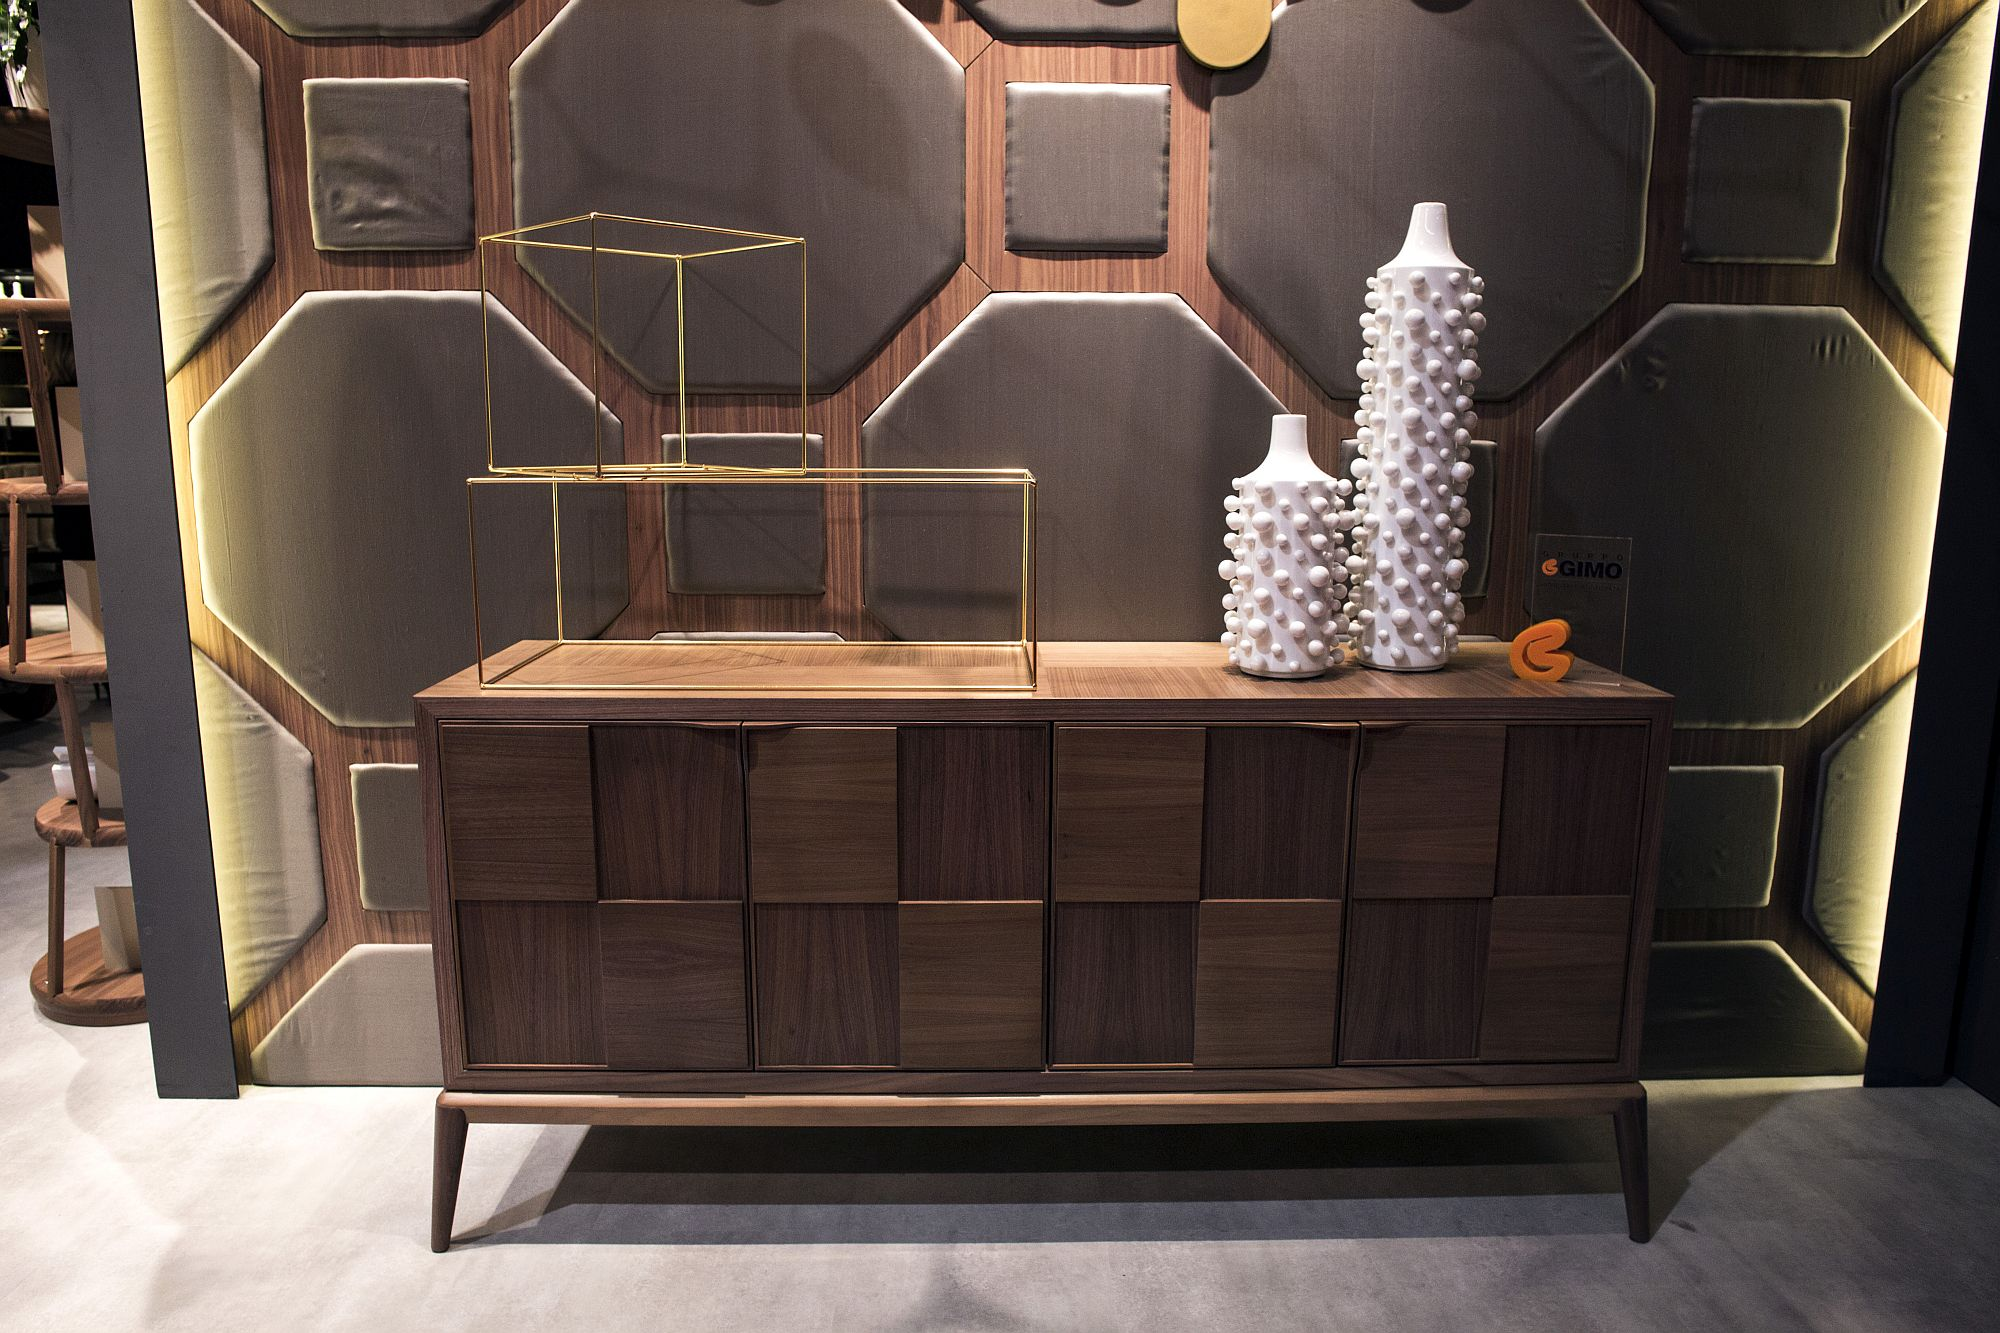 Sideboard-and-even-the-backdrop-add-geo-style-to-the-living-room